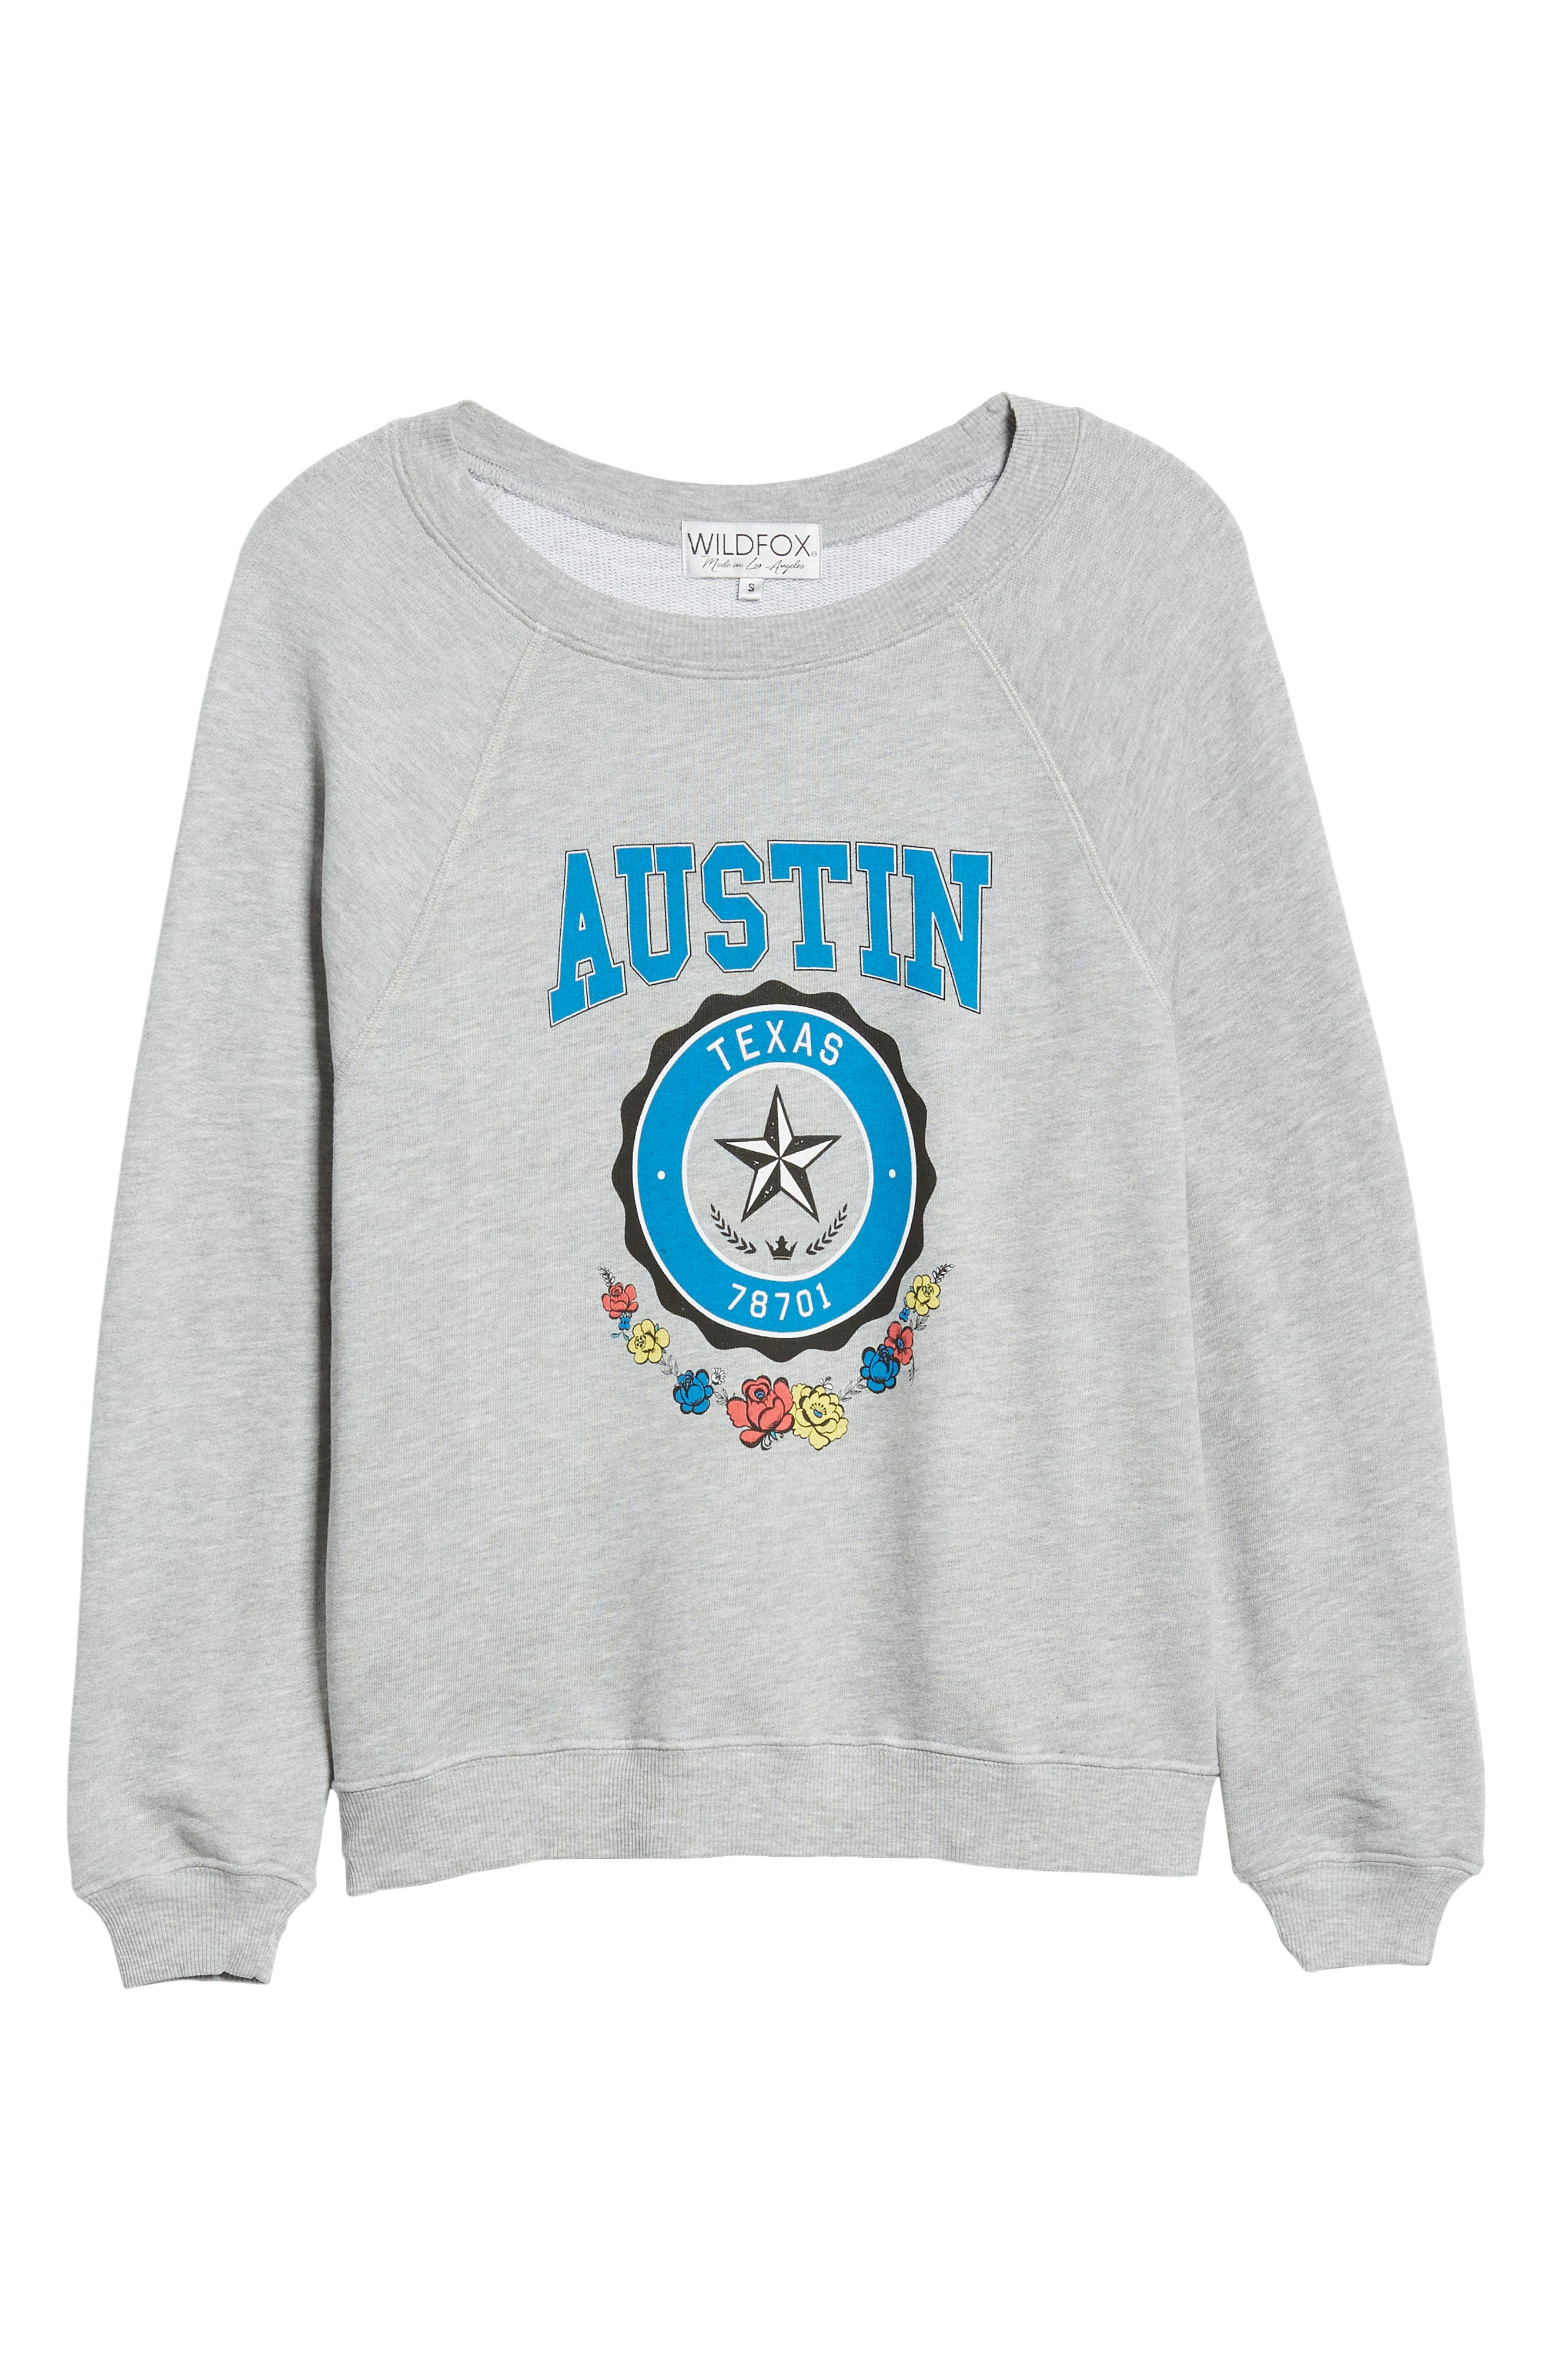 Austin Crest Sommers Sweatshirt,                             Alternate thumbnail 6, color,                             HEATHER